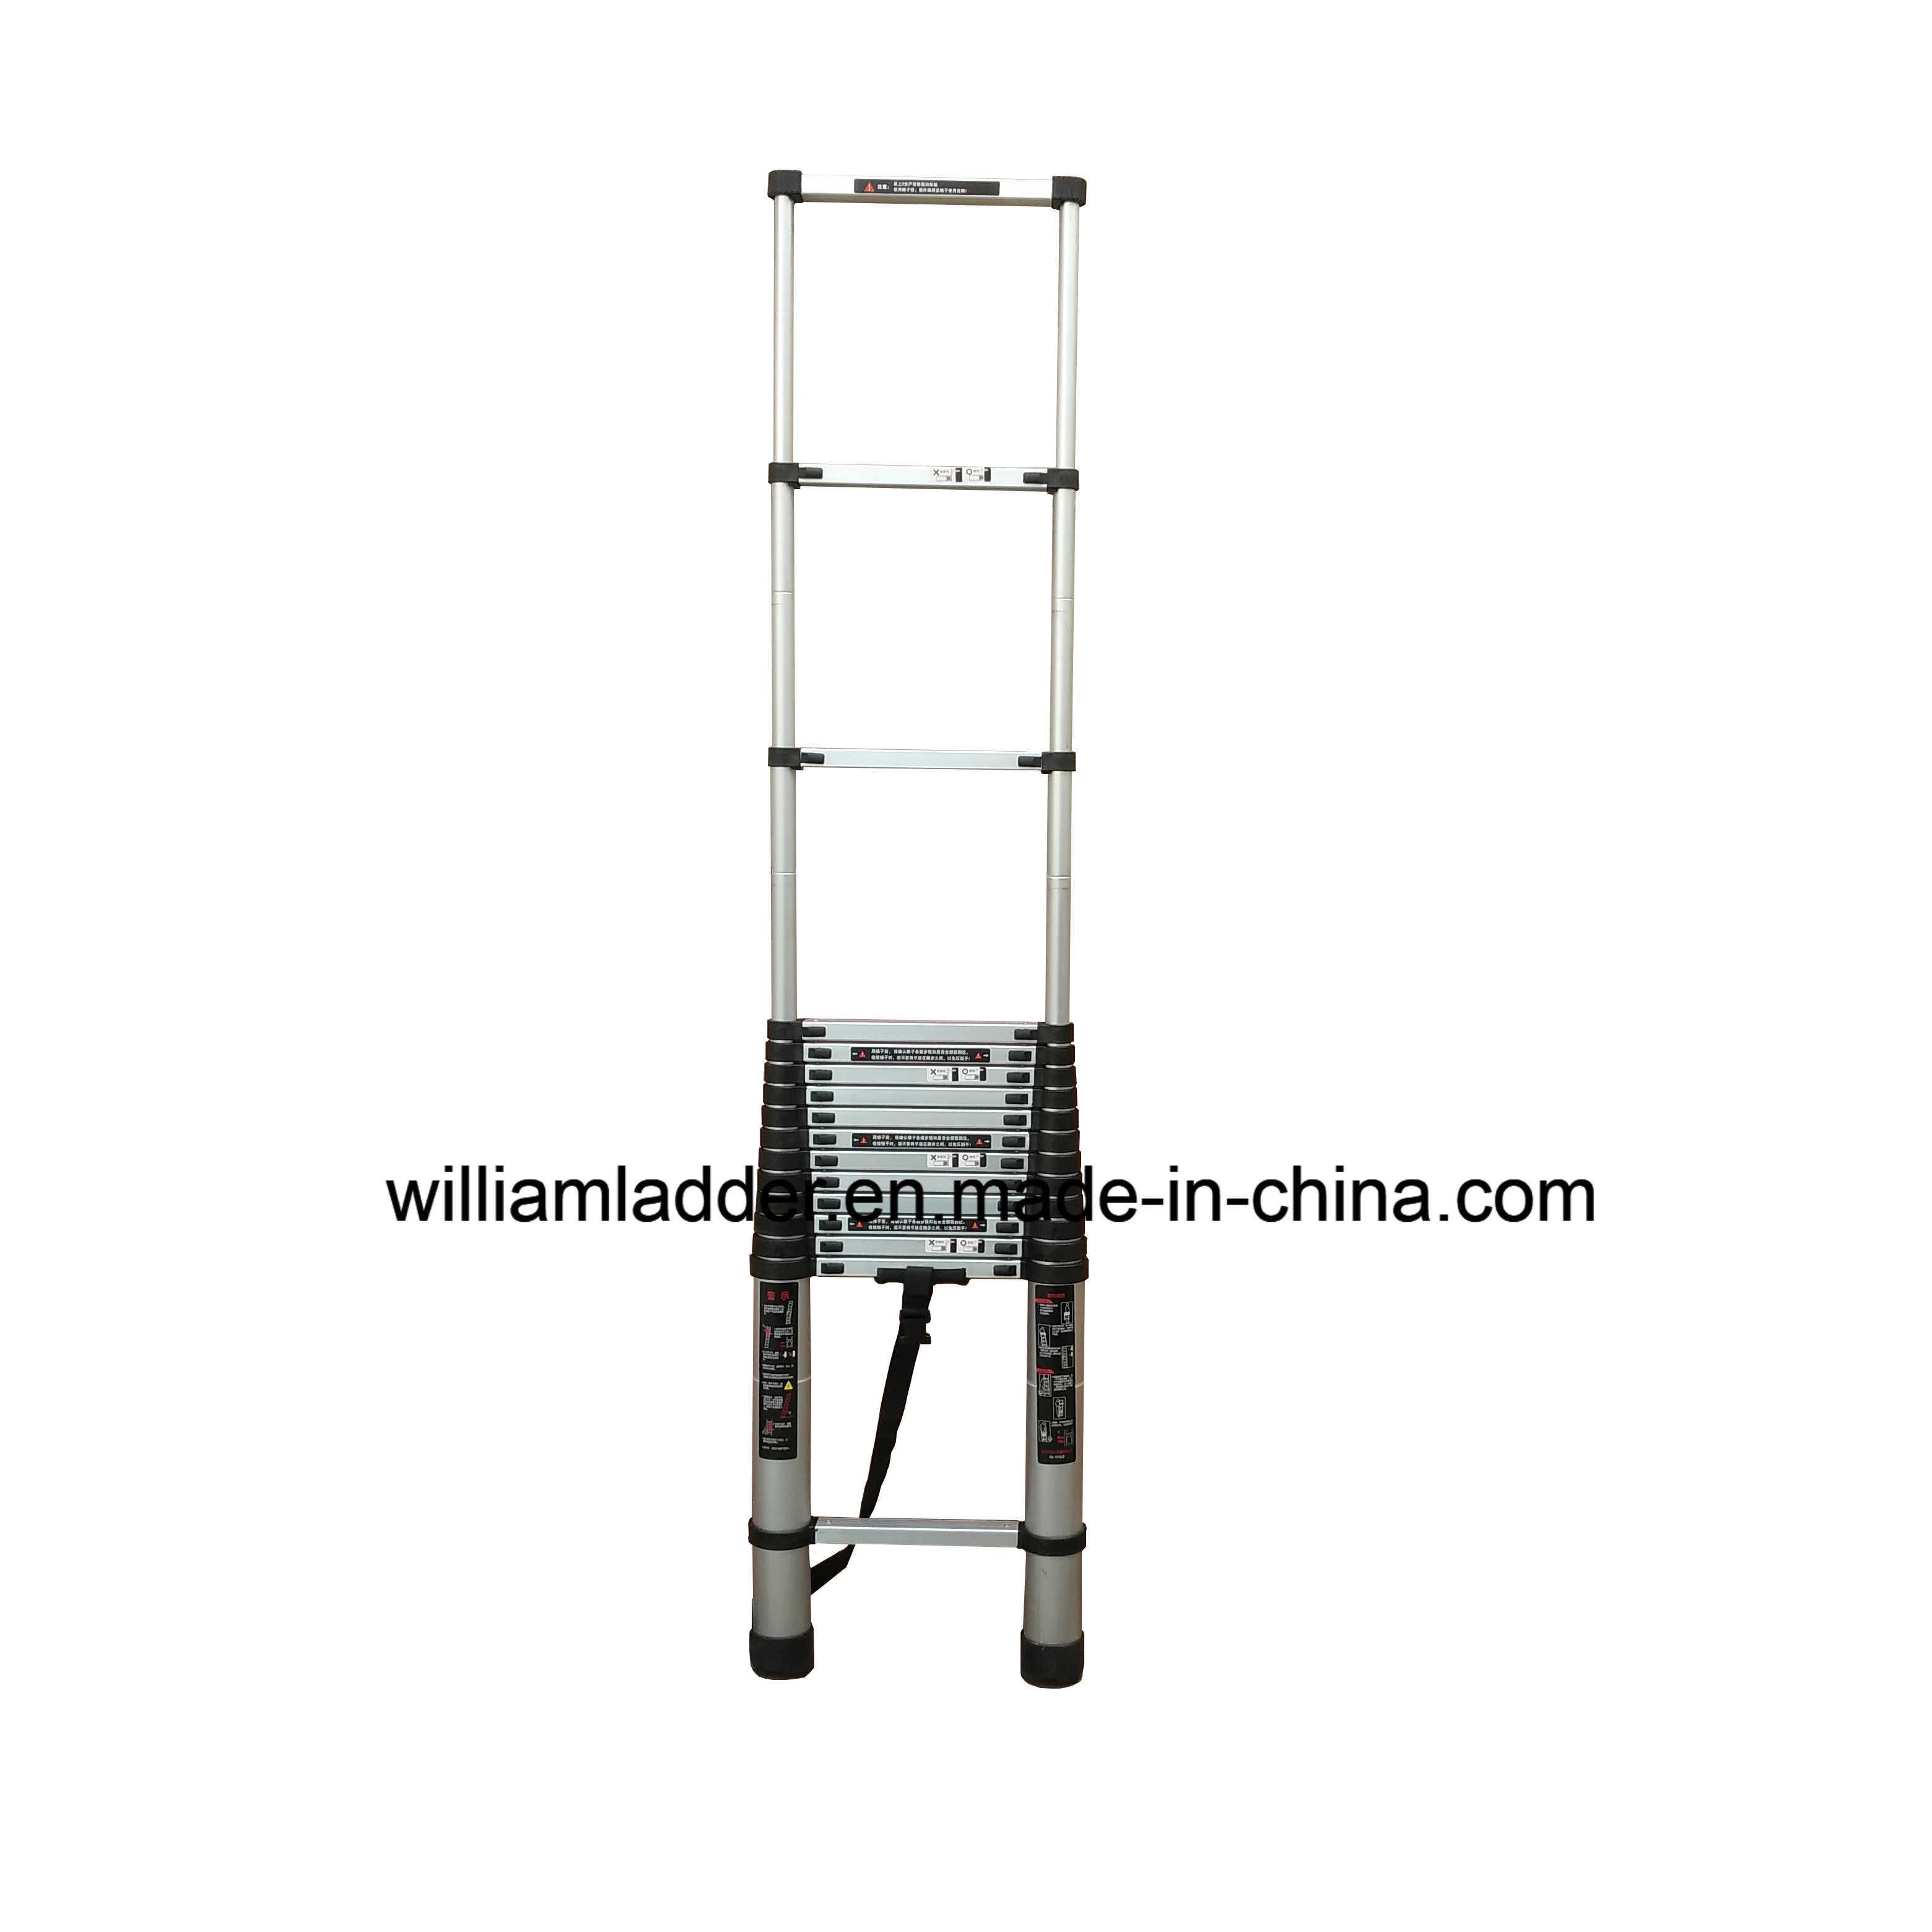 6.1m Single Telescopic Ladder Aluminum Foldable Stairs